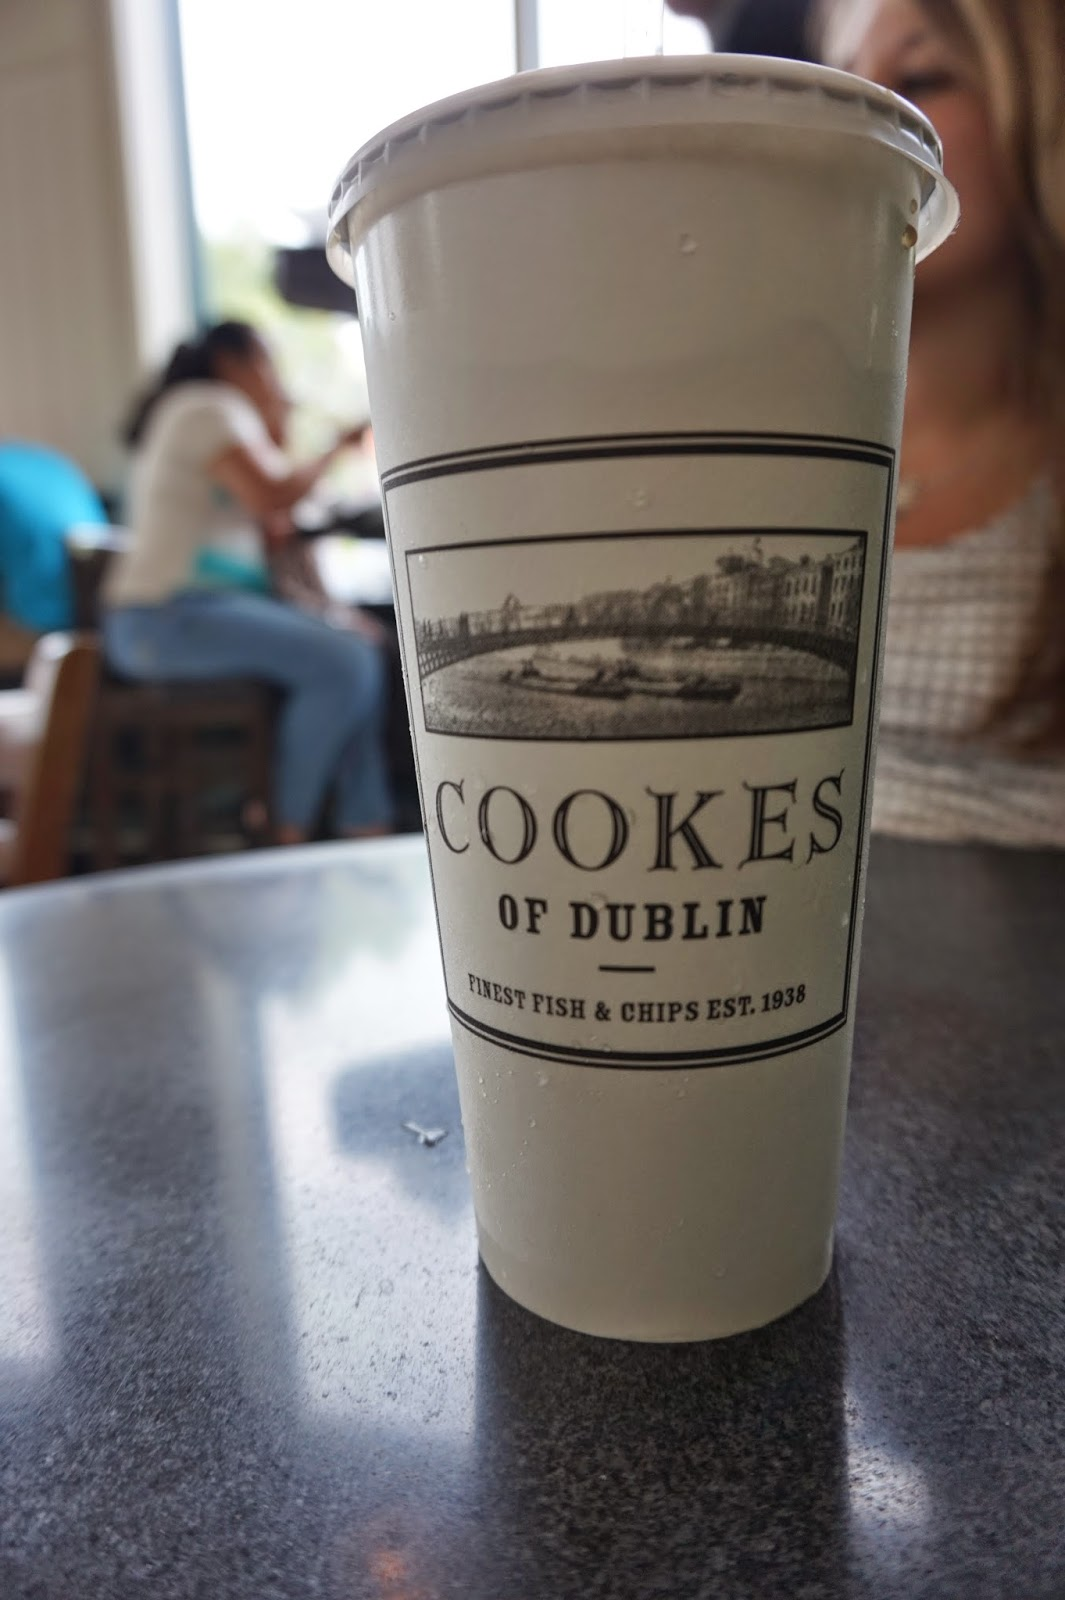 Cookes of Dublin